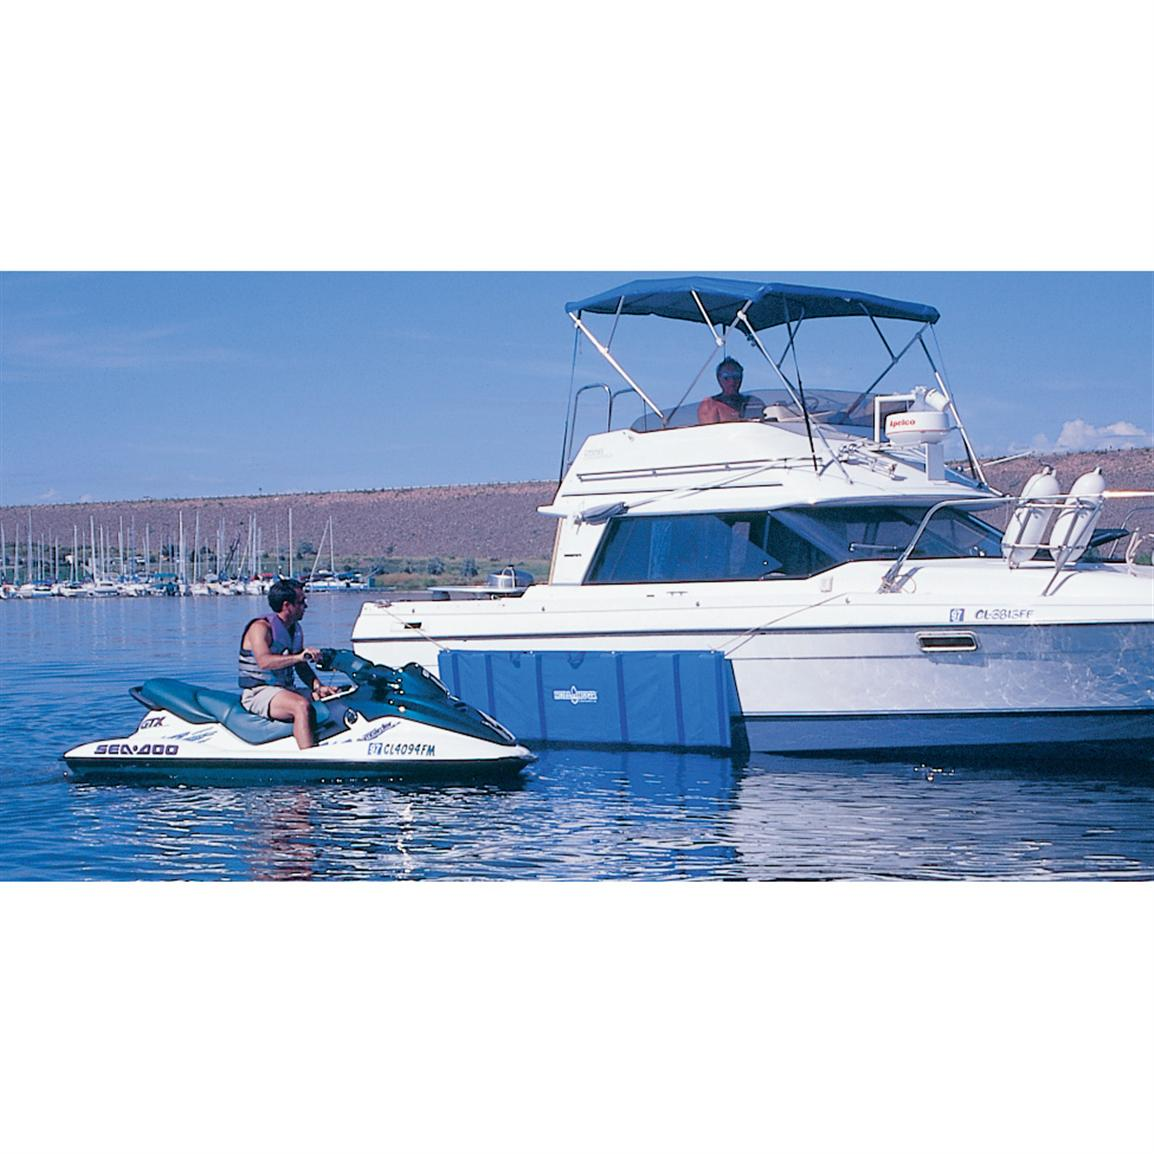 Reliable, form-fitting protection that stays put when your boat rocks